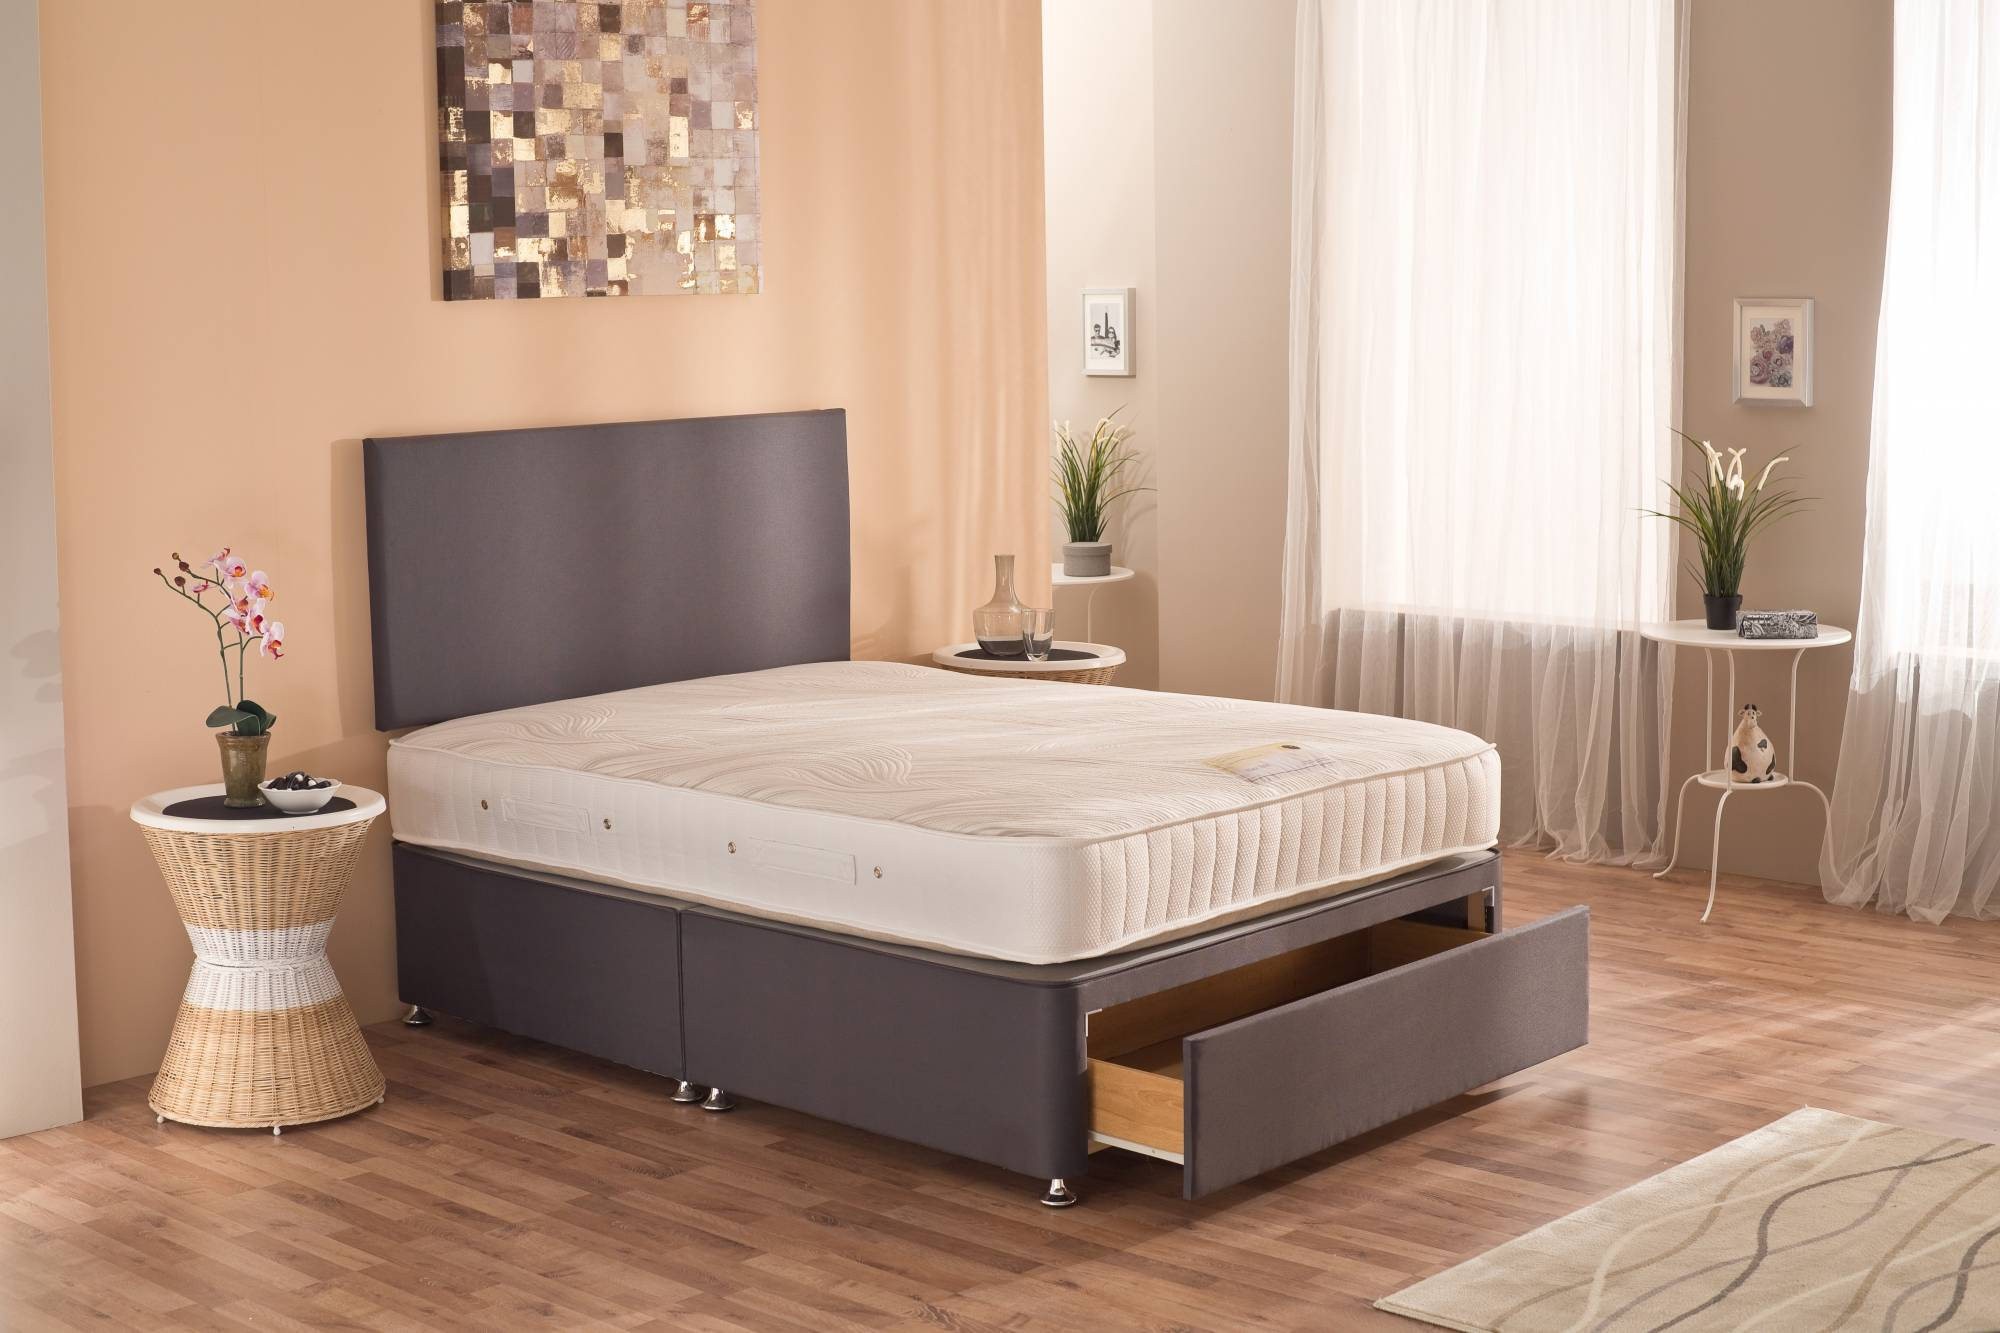 Moonraker Beds Visco Deluxe